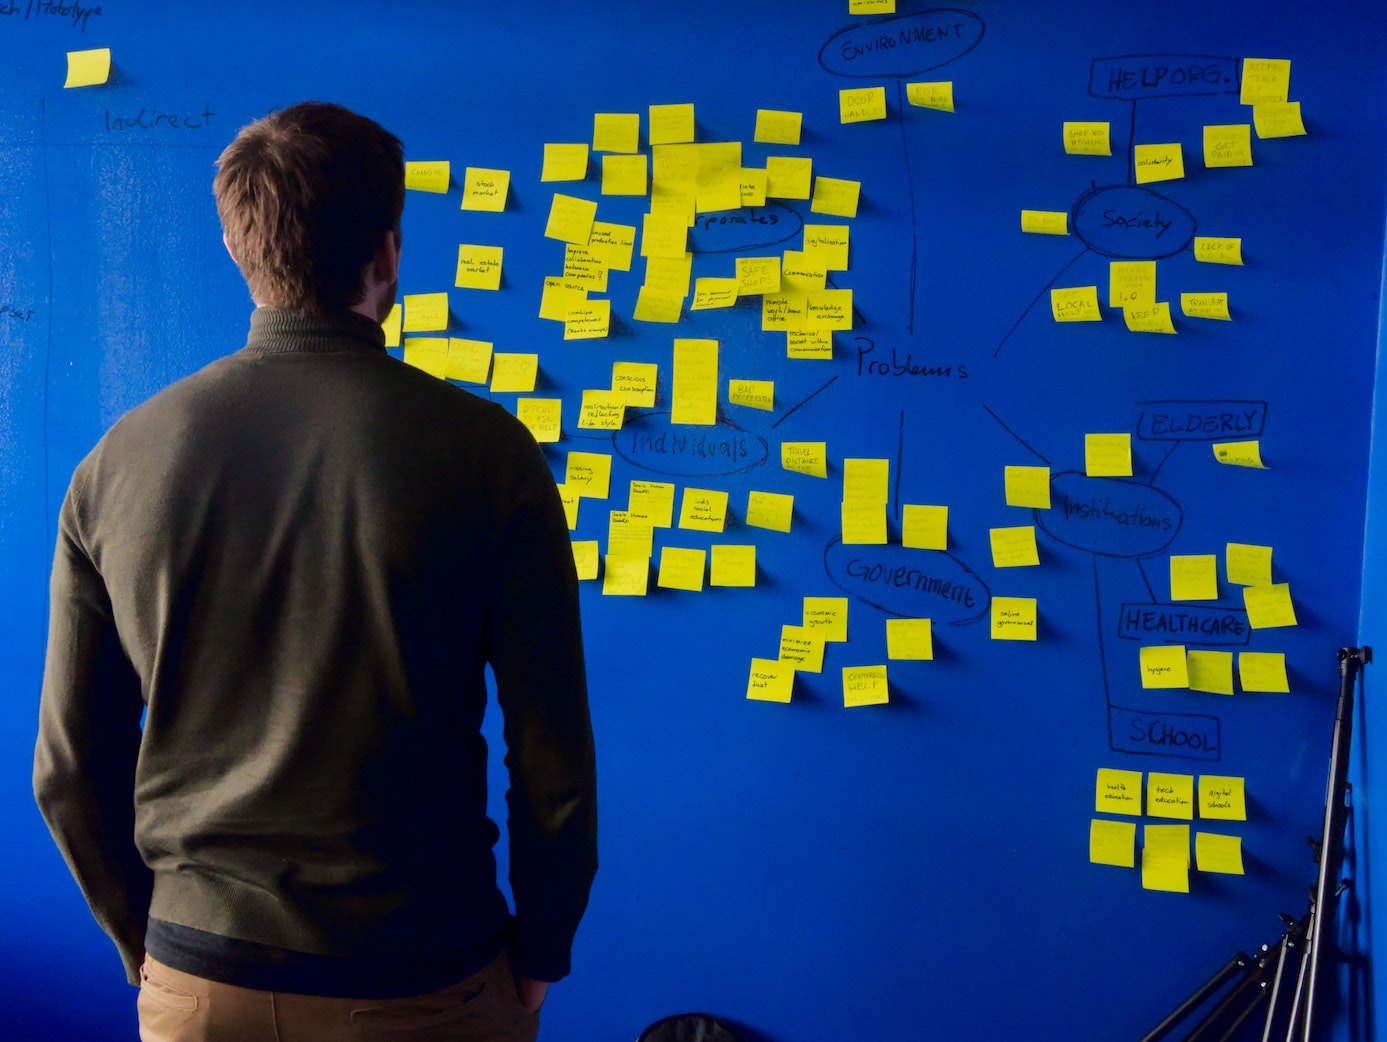 Man staring at a bunch of post-it notes